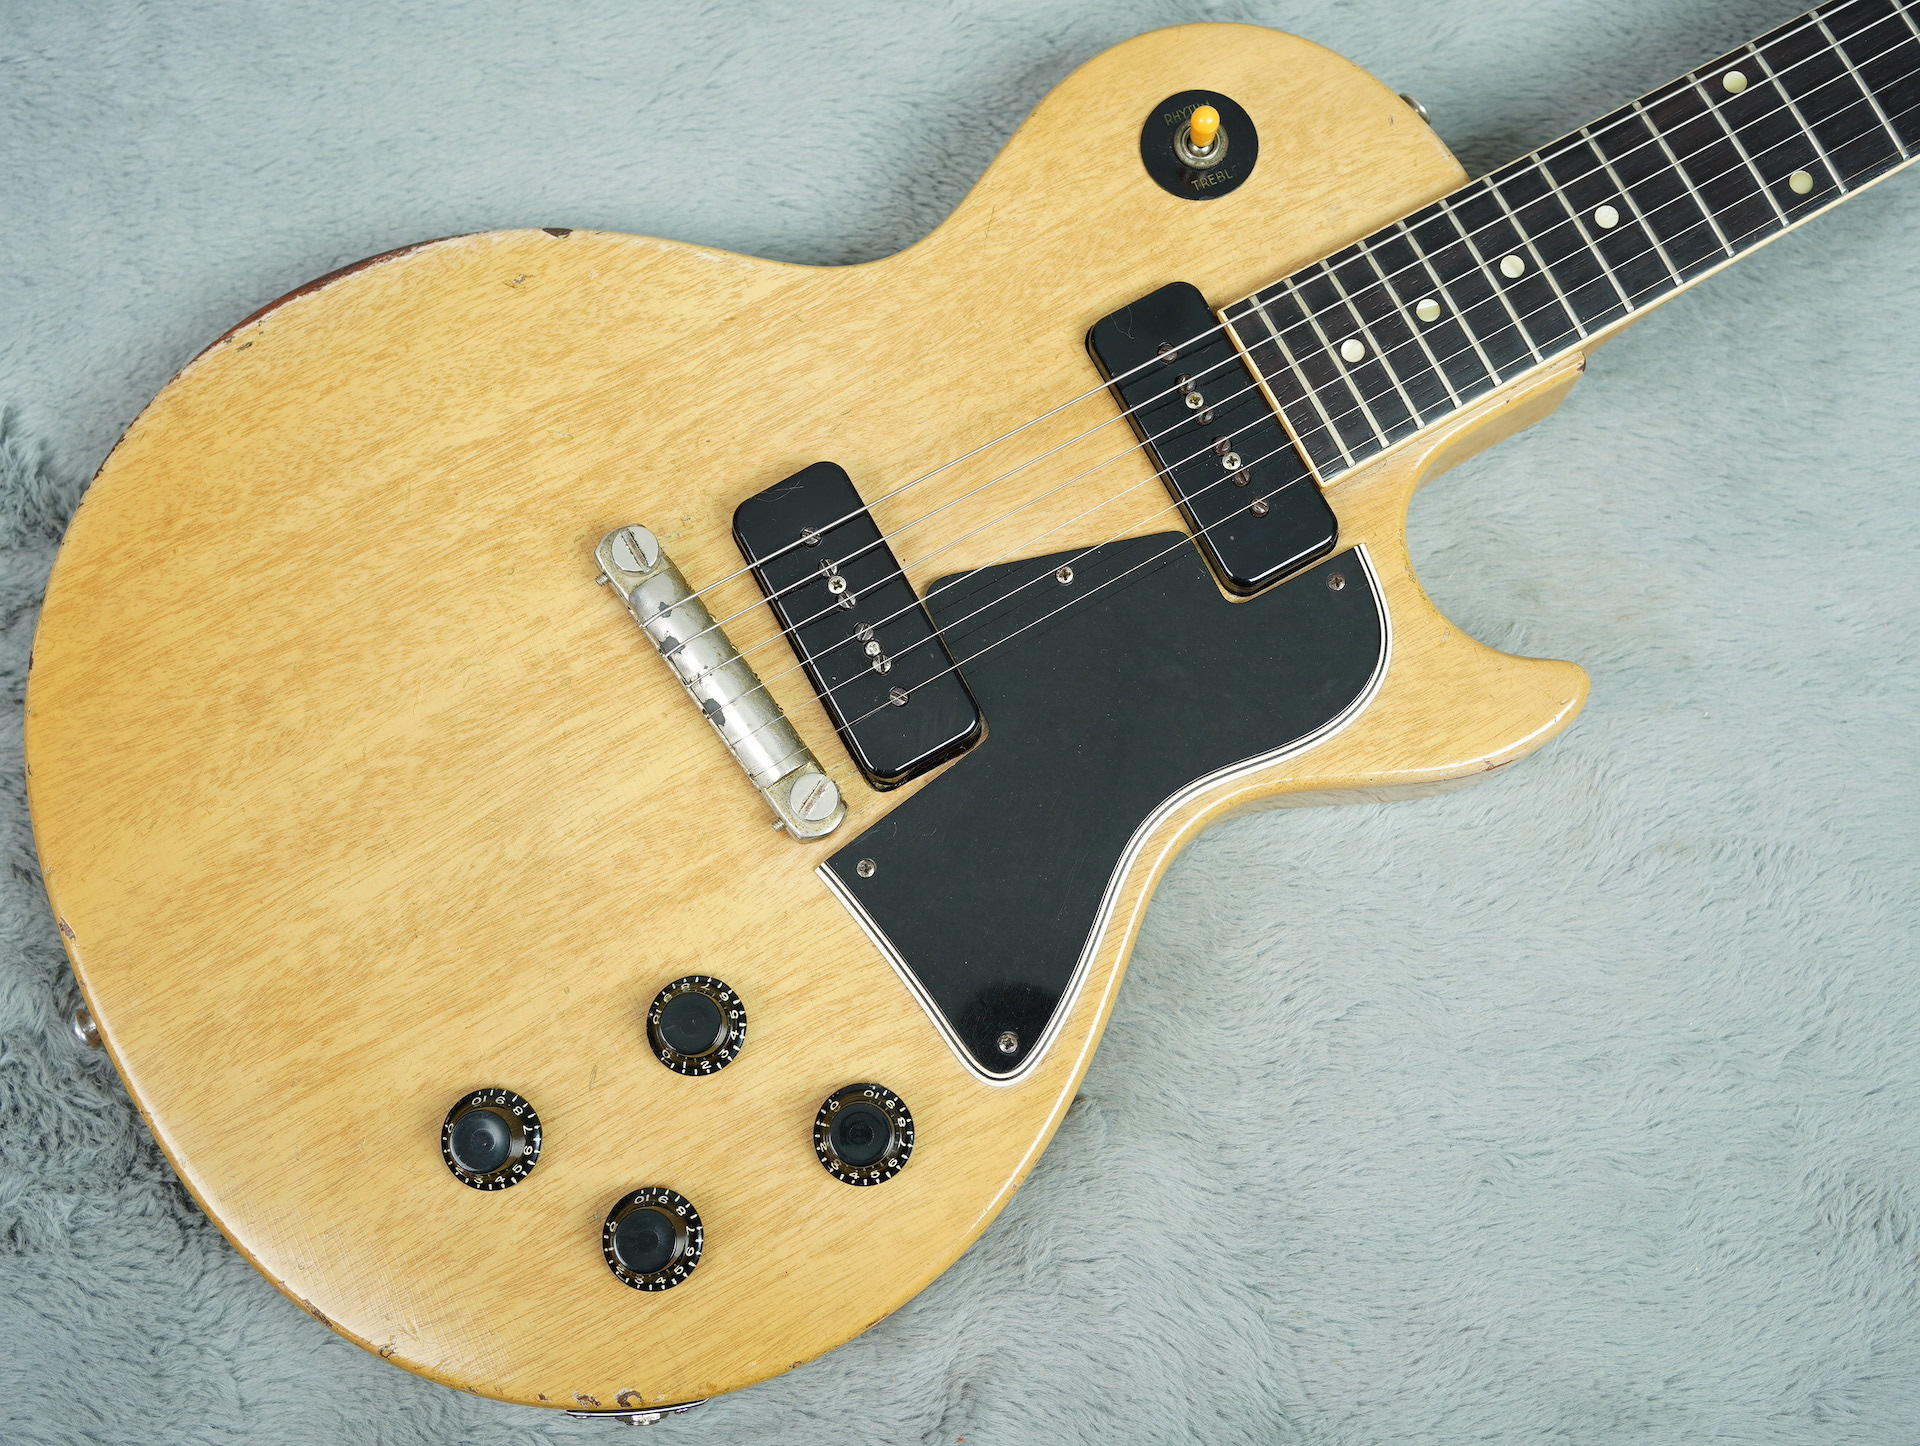 1955 Gibson Les Paul Special TV Yellow + HSC